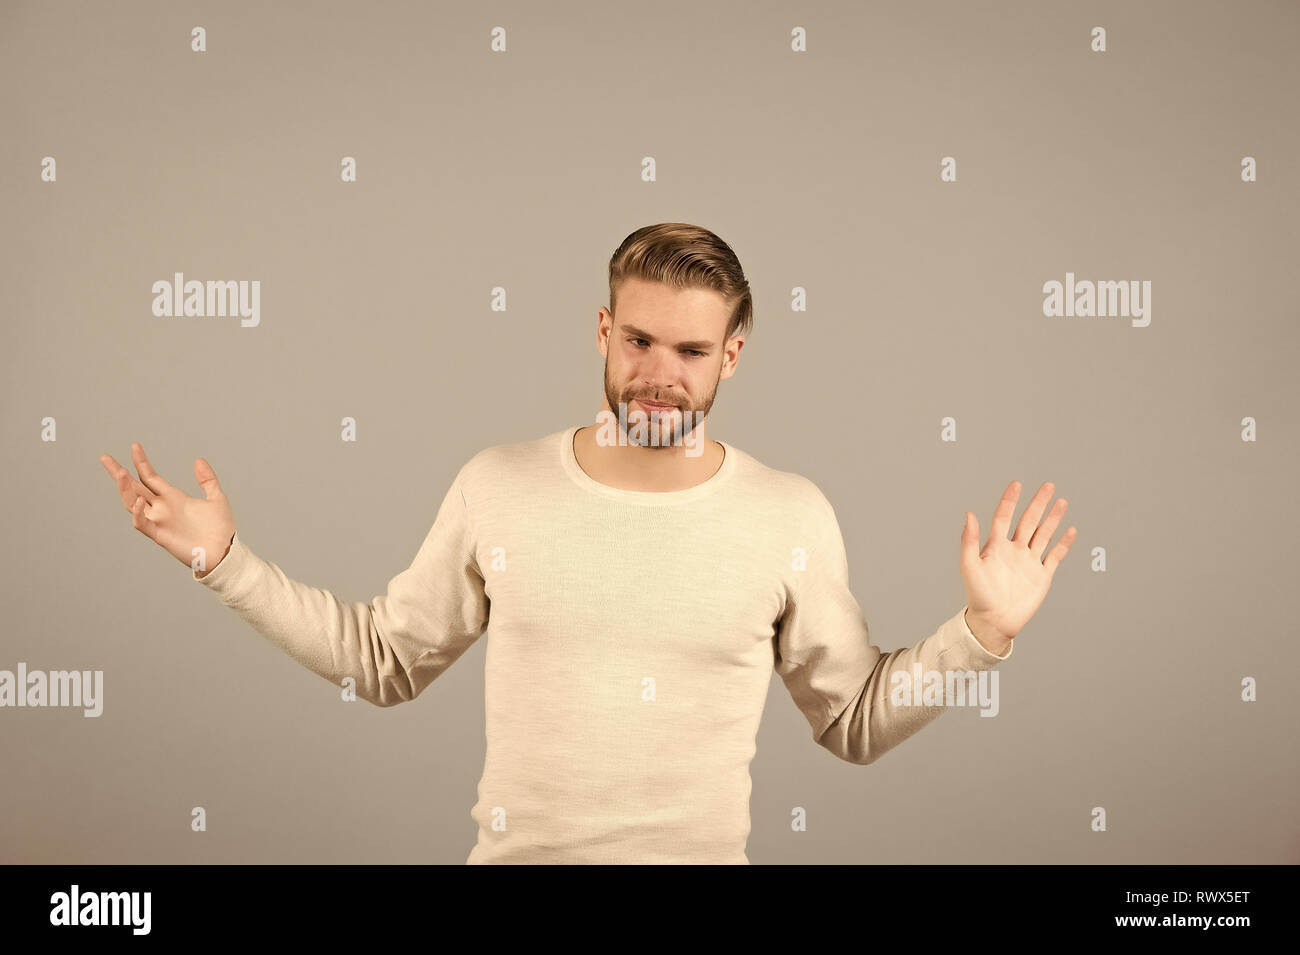 I am fed up. Just leave me alone. Man tired hopeless handsome unshaven stylish macho, grey background. Man fed up with life problems. Guy unlucky hopeless sick of problems give up. - Stock Image